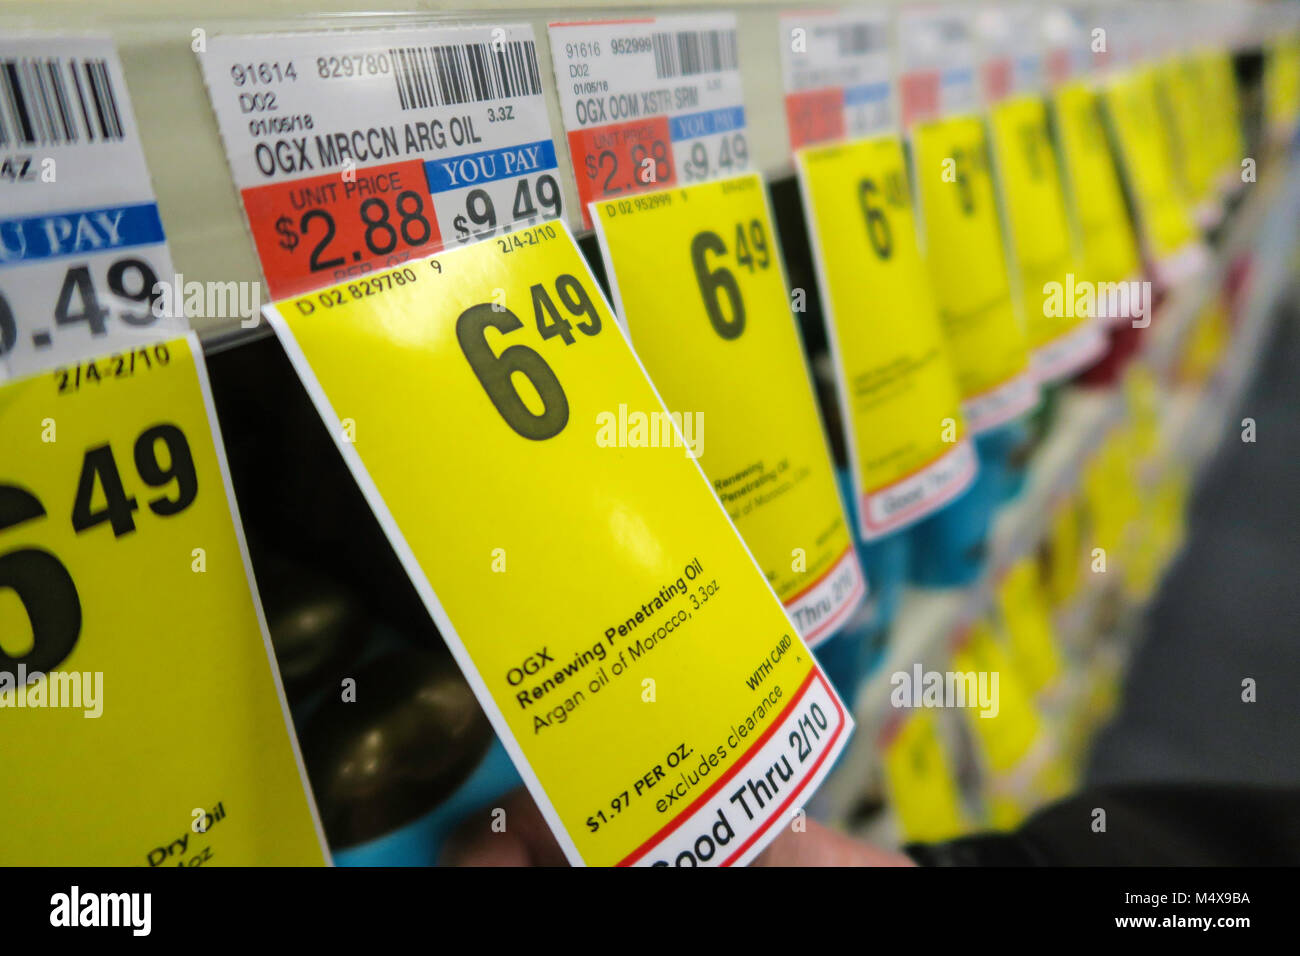 tags and prices stock photos  u0026 tags and prices stock images